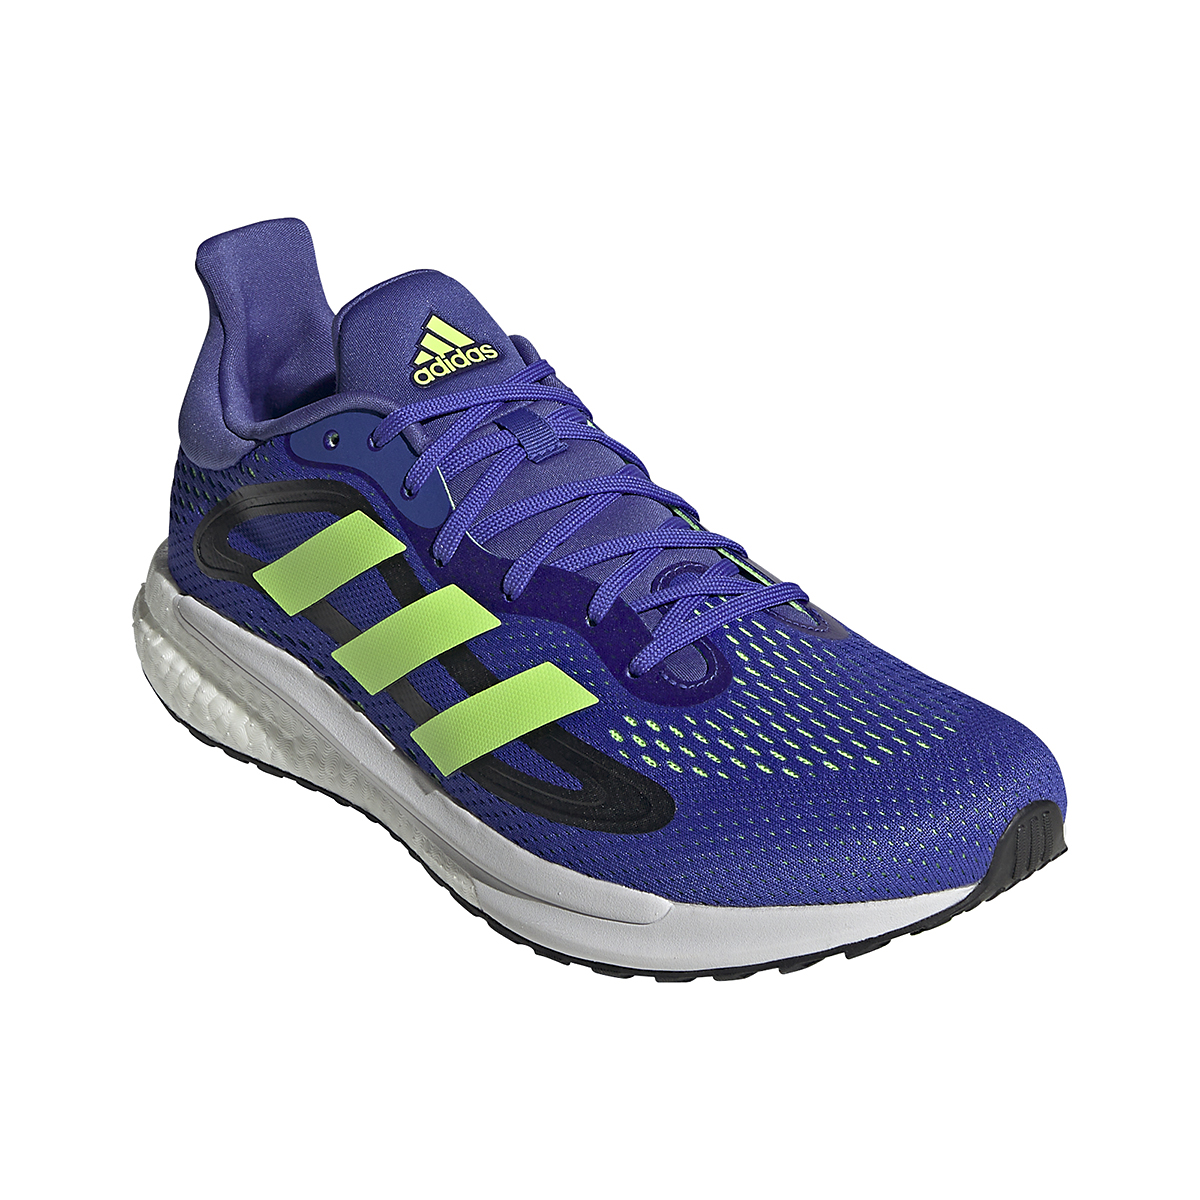 Men's Adidas SolarGlide 4 Running Shoe - Color: Sonic Ink/Signal Green/Core Black - Size: 6.5 - Width: Regular, Sonic Ink/Signal Green/Core Black, large, image 3